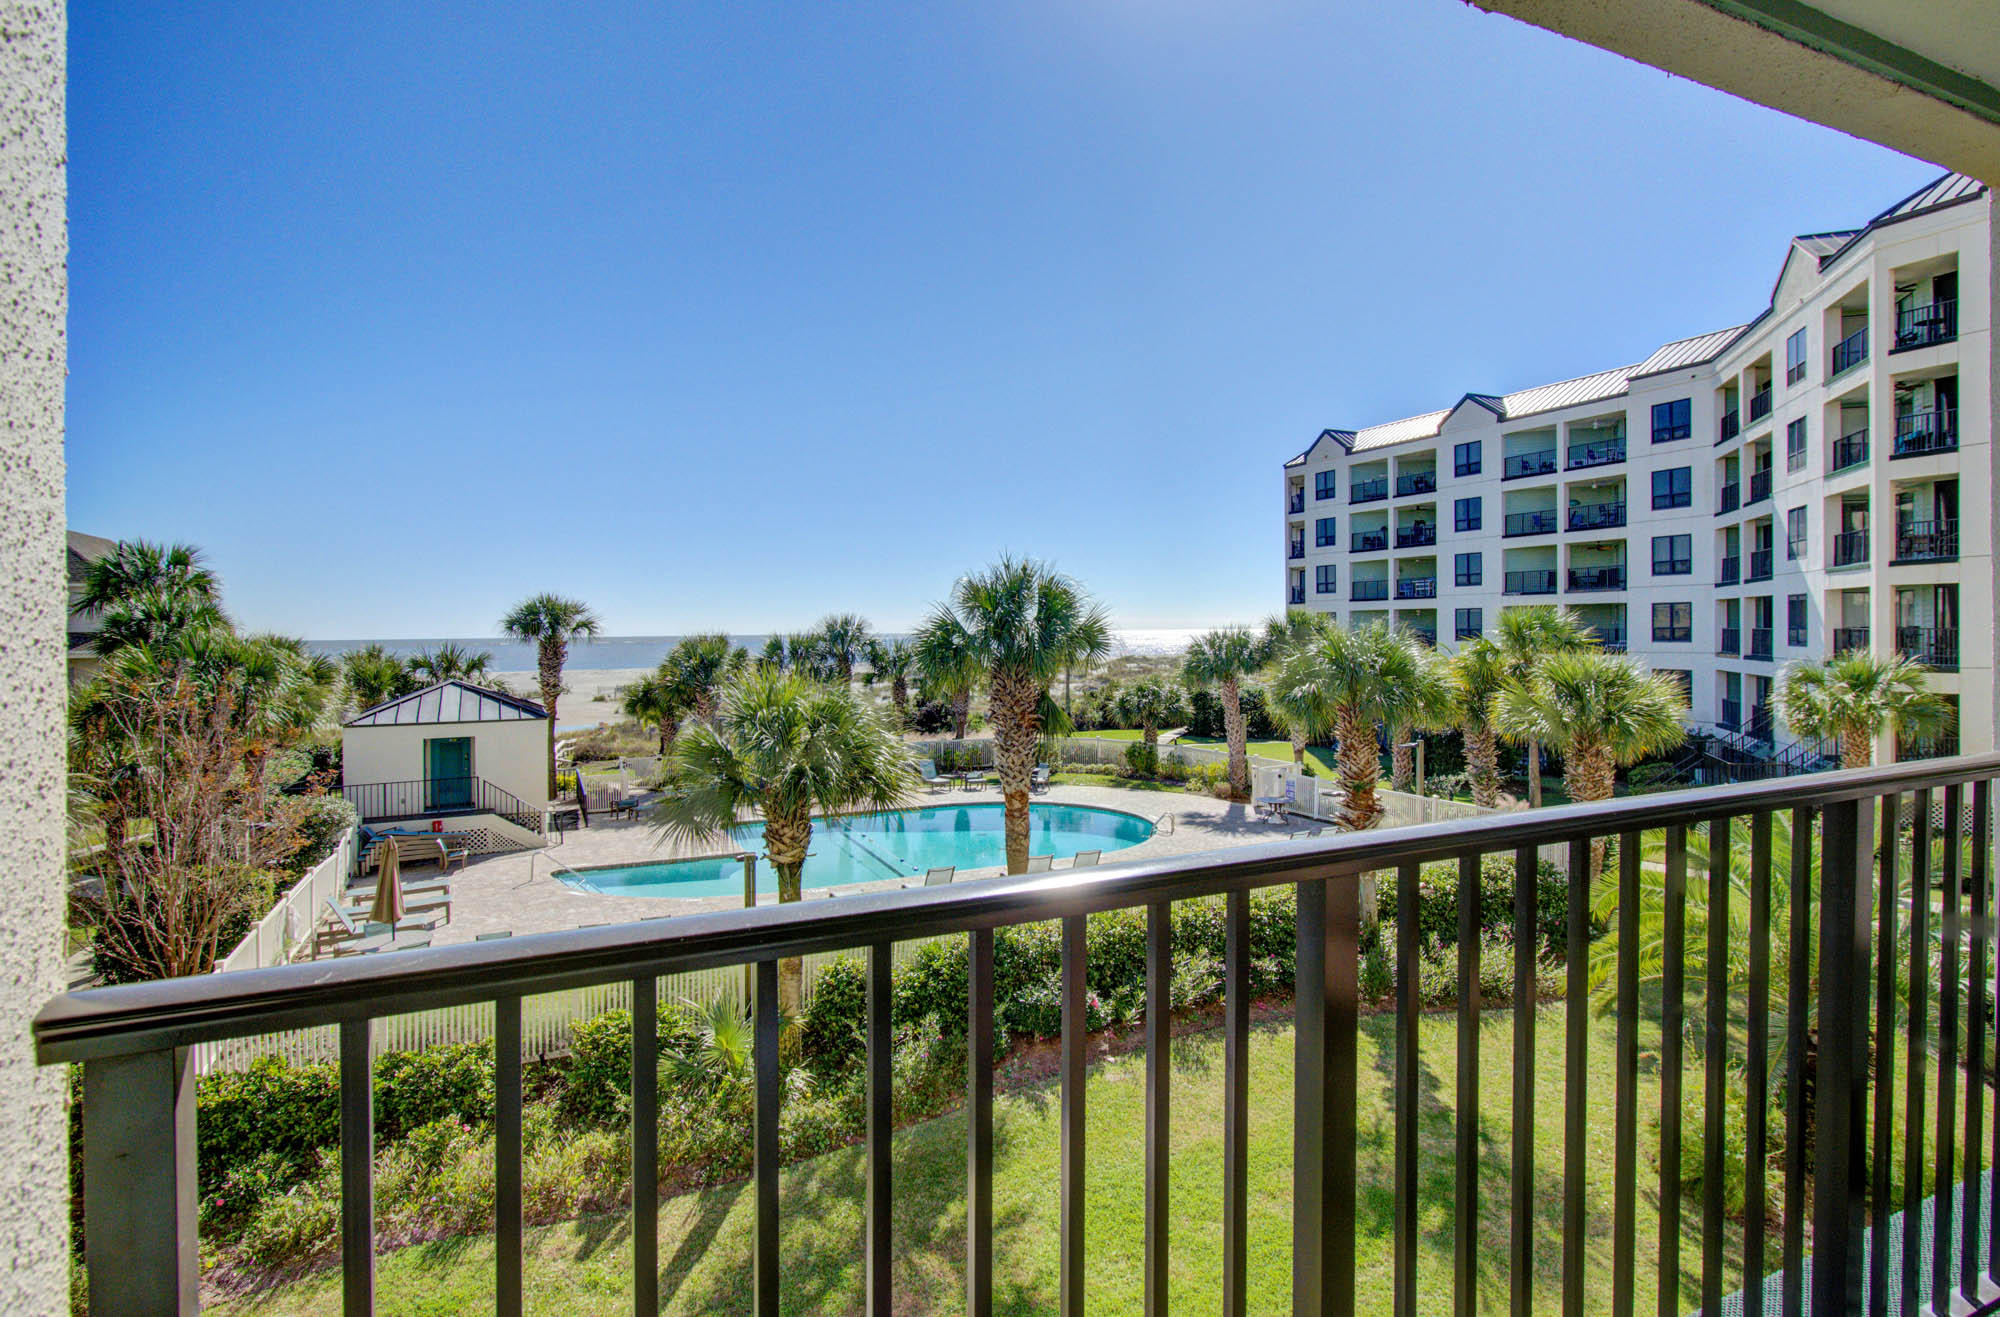 Wild Dunes Homes For Sale - 210 Summerhouse, Isle of Palms, SC - 3